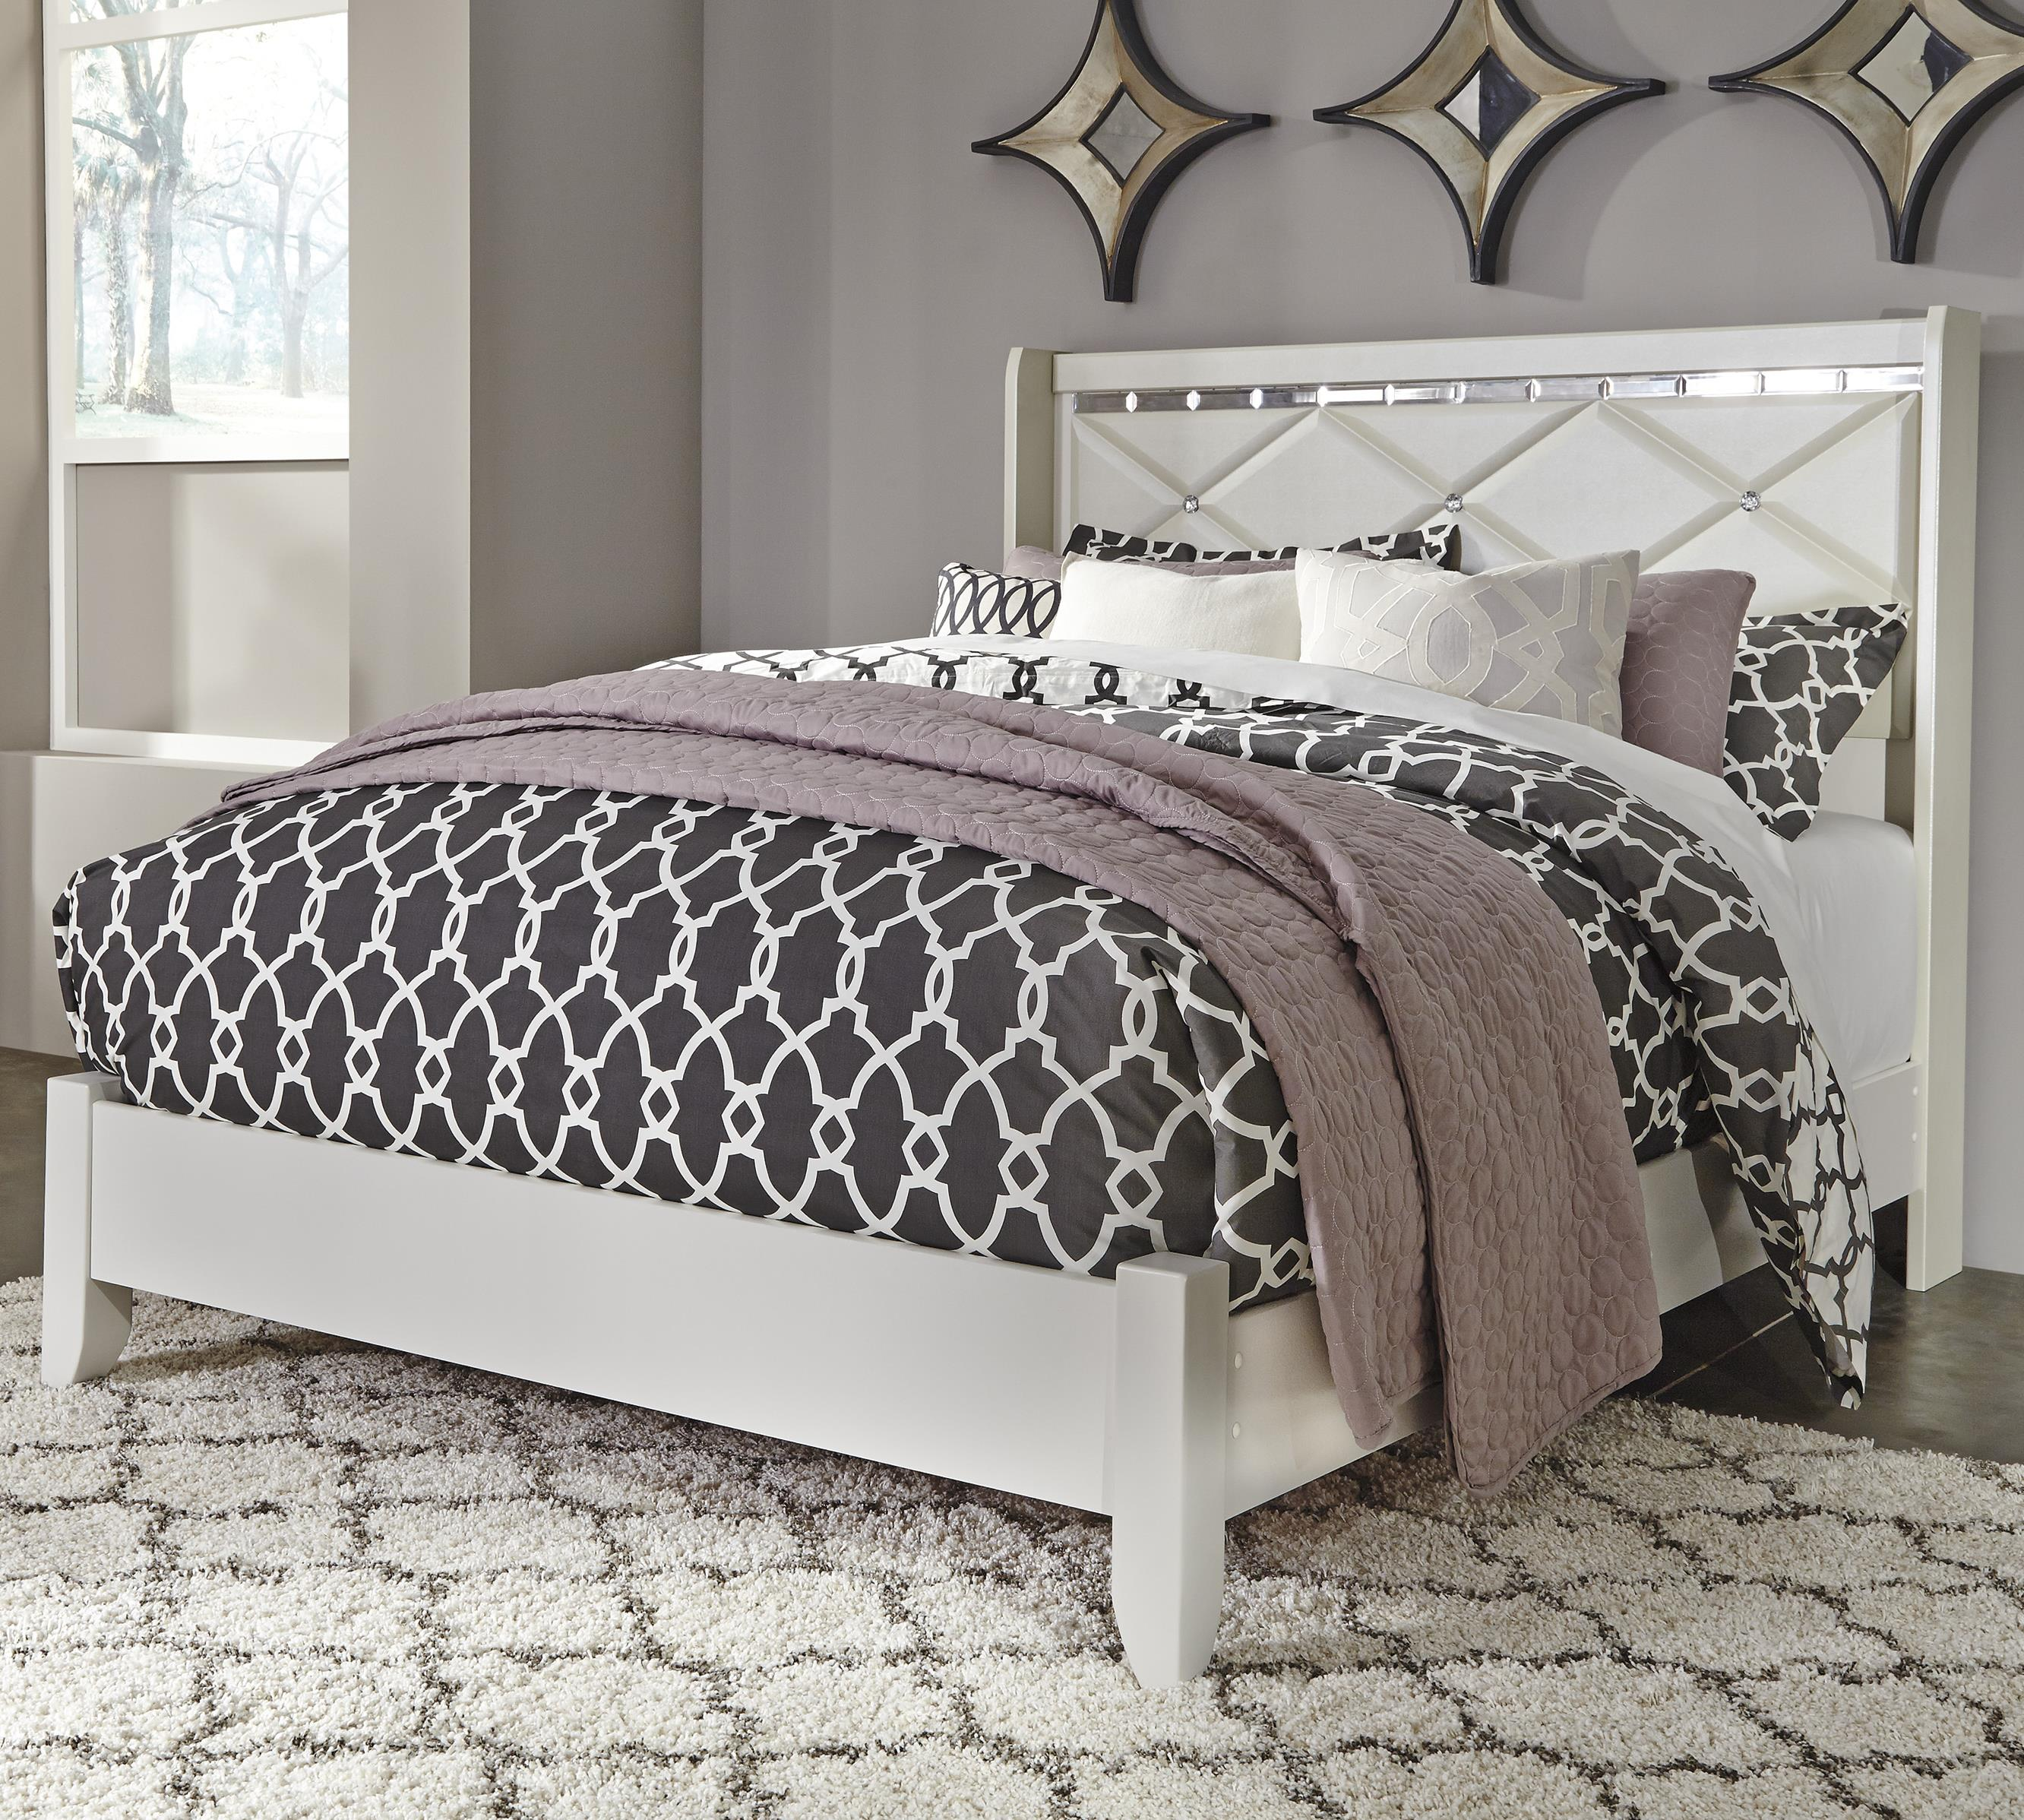 Dreamur Queen Panel Bed by Signature Design by Ashley at Zak's Warehouse Clearance Center